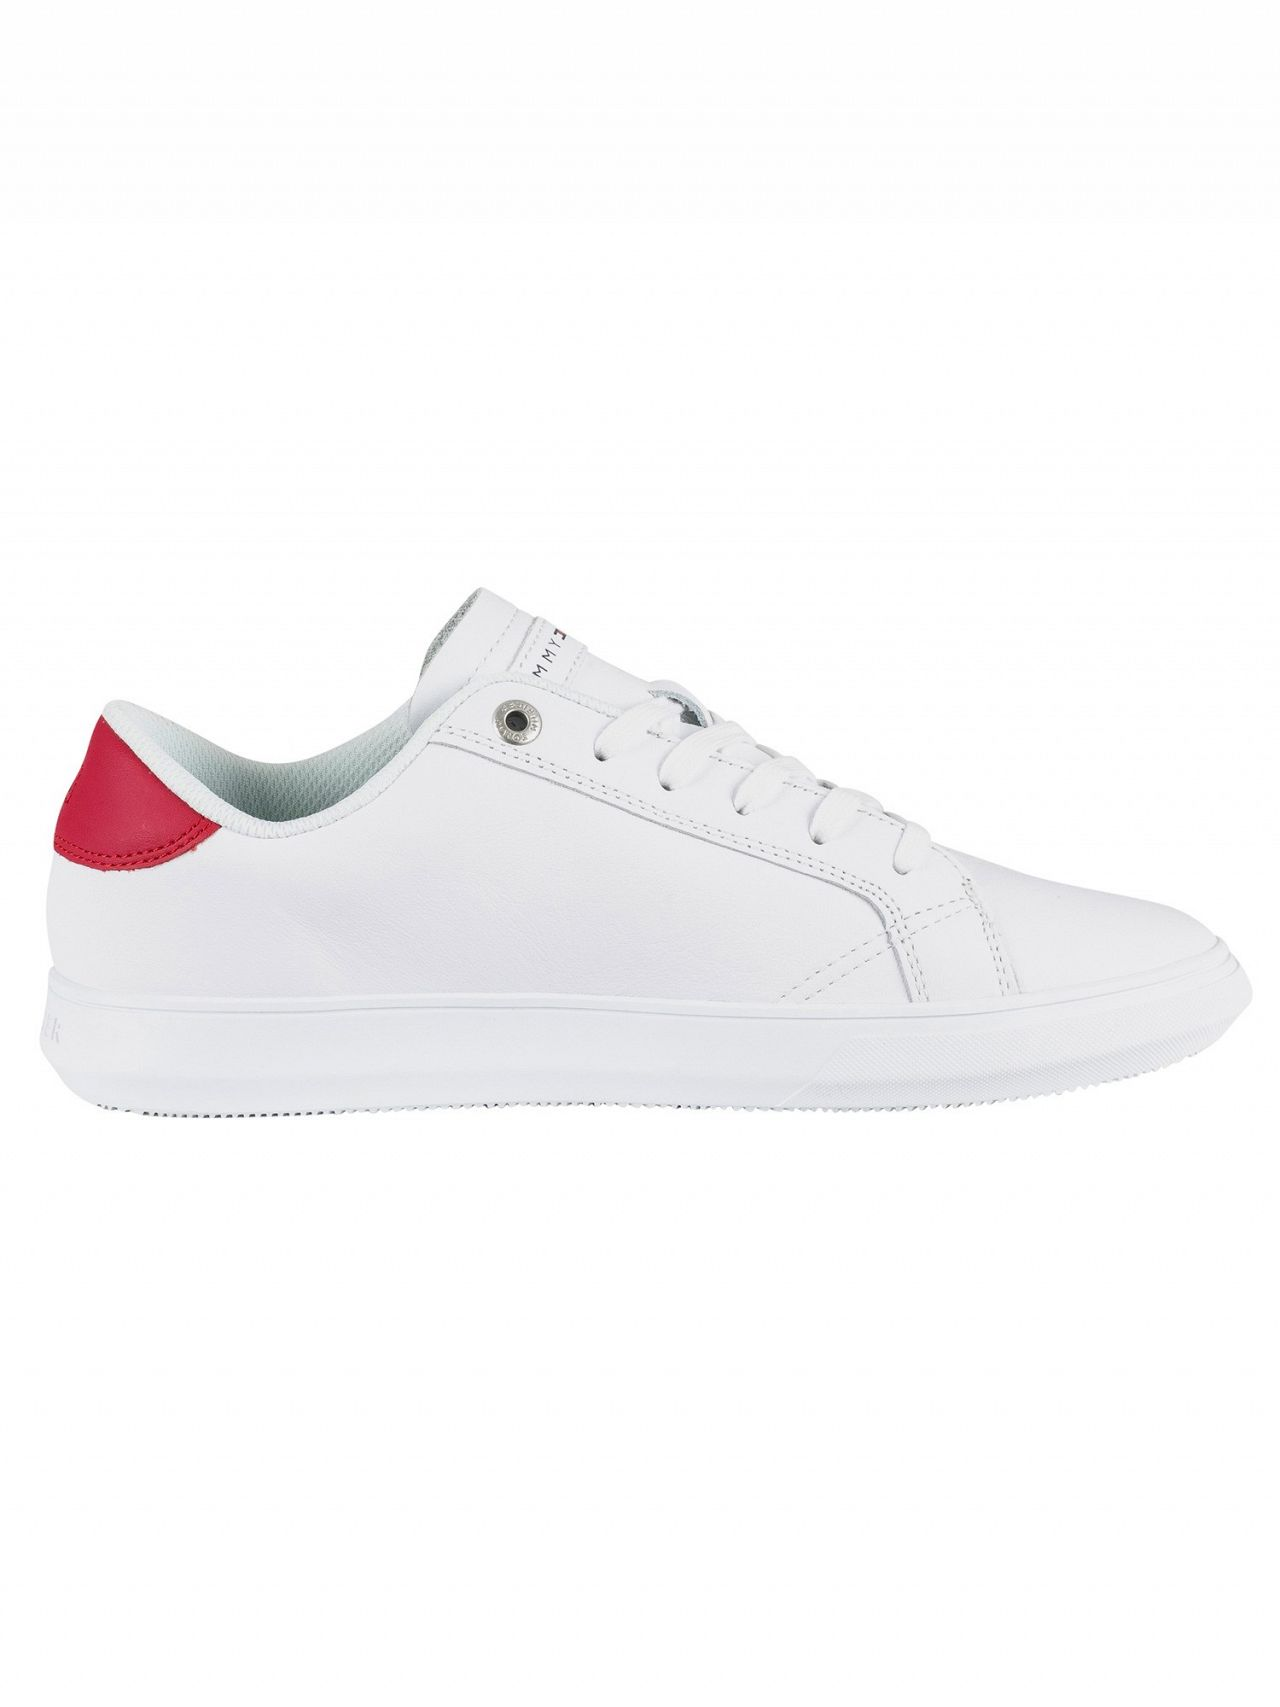 78e2c7c45efe Tommy Hilfiger White Essential Leather Cupsole Trainers